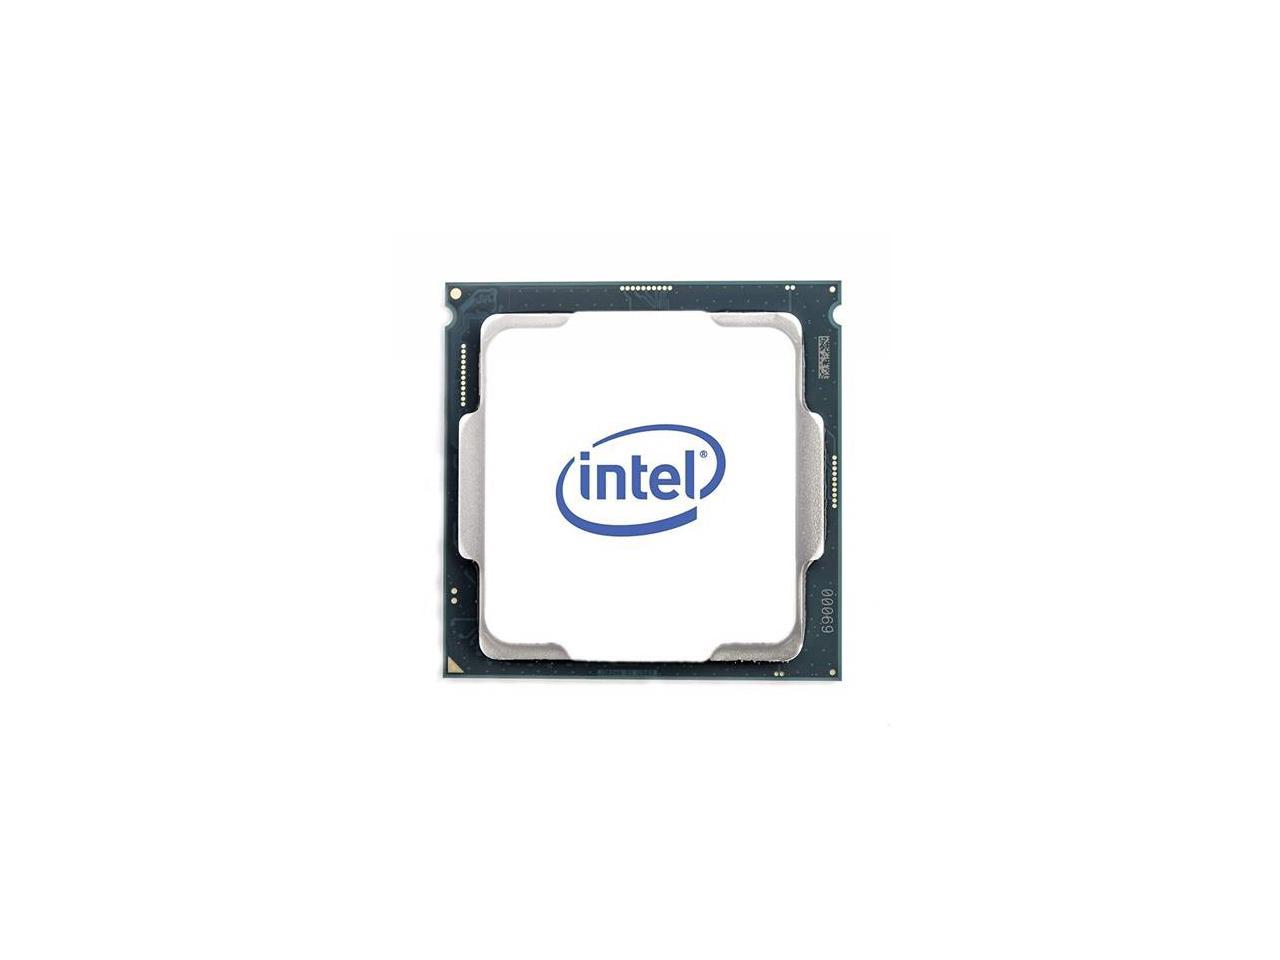 Magento Hosting with the Latest Intel Processors